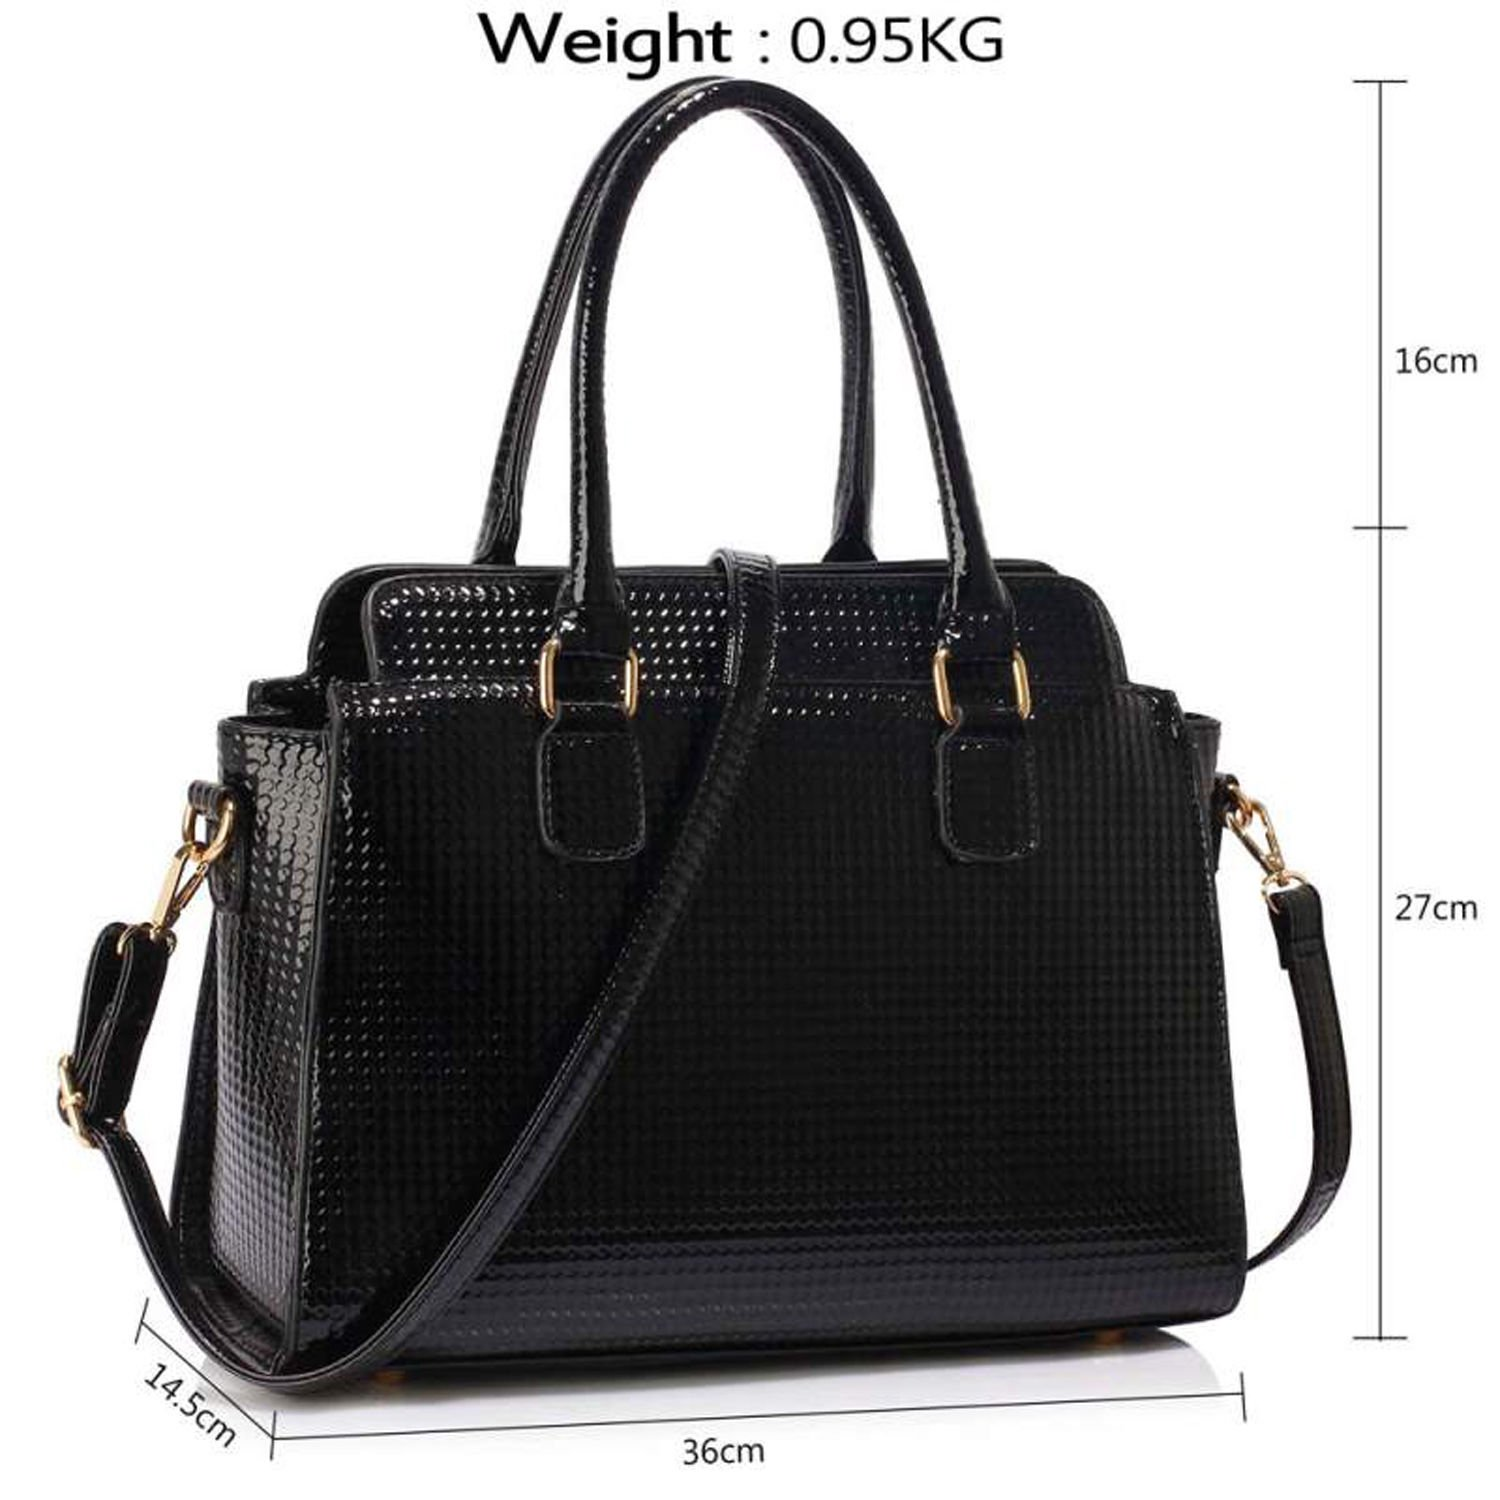 ... Medium Patent Leather Grab Bag for Women Vinyl Waterproof Designer Work  Office Handbags with Long Adjustable Shoulder Strap  Amazon.co.uk  Shoes    Bags dd9b79f6314d8